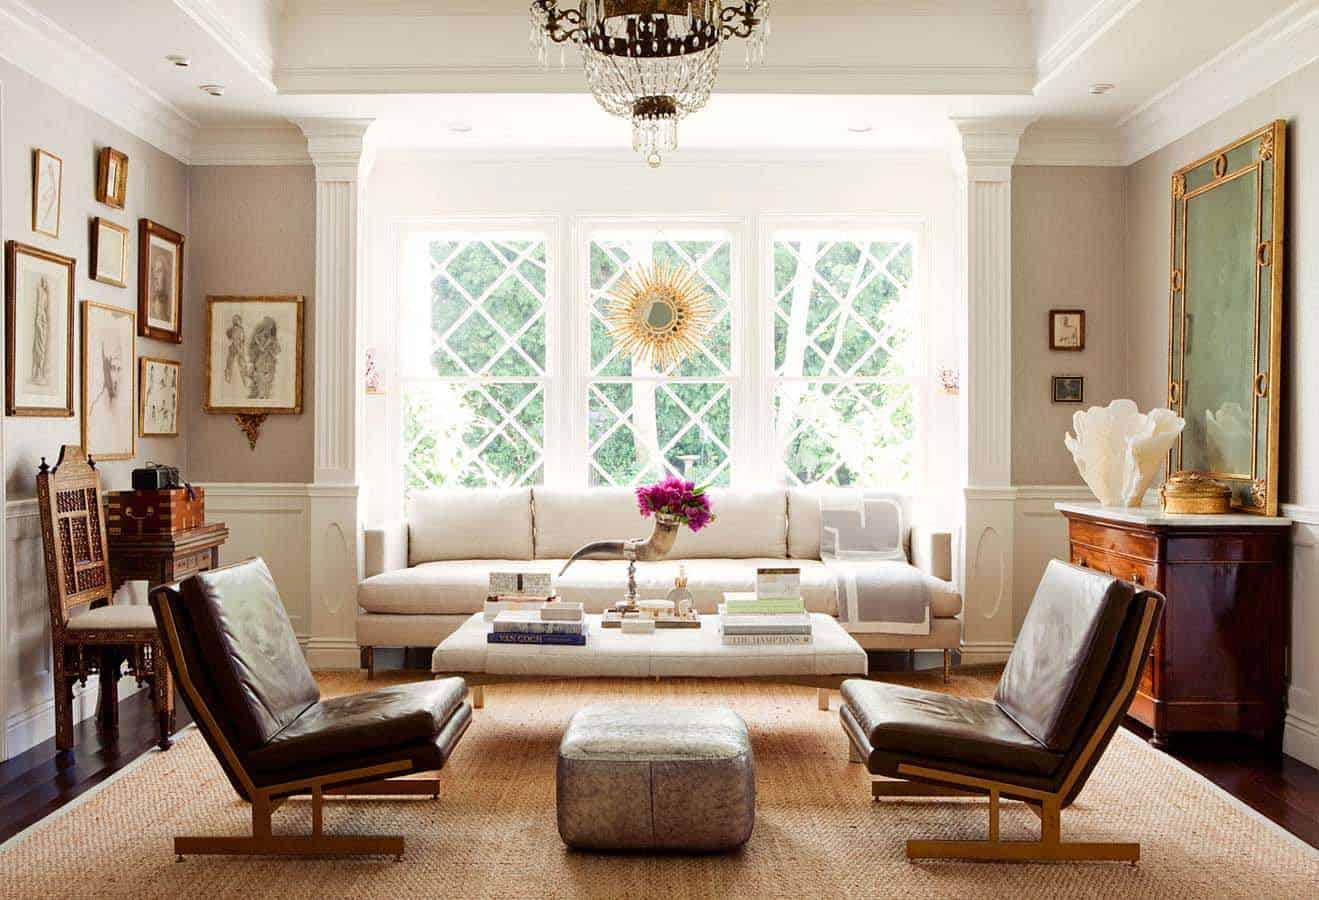 Living Room Furniture Arrangements Pictures arranging living room furniture | kristina wolf design